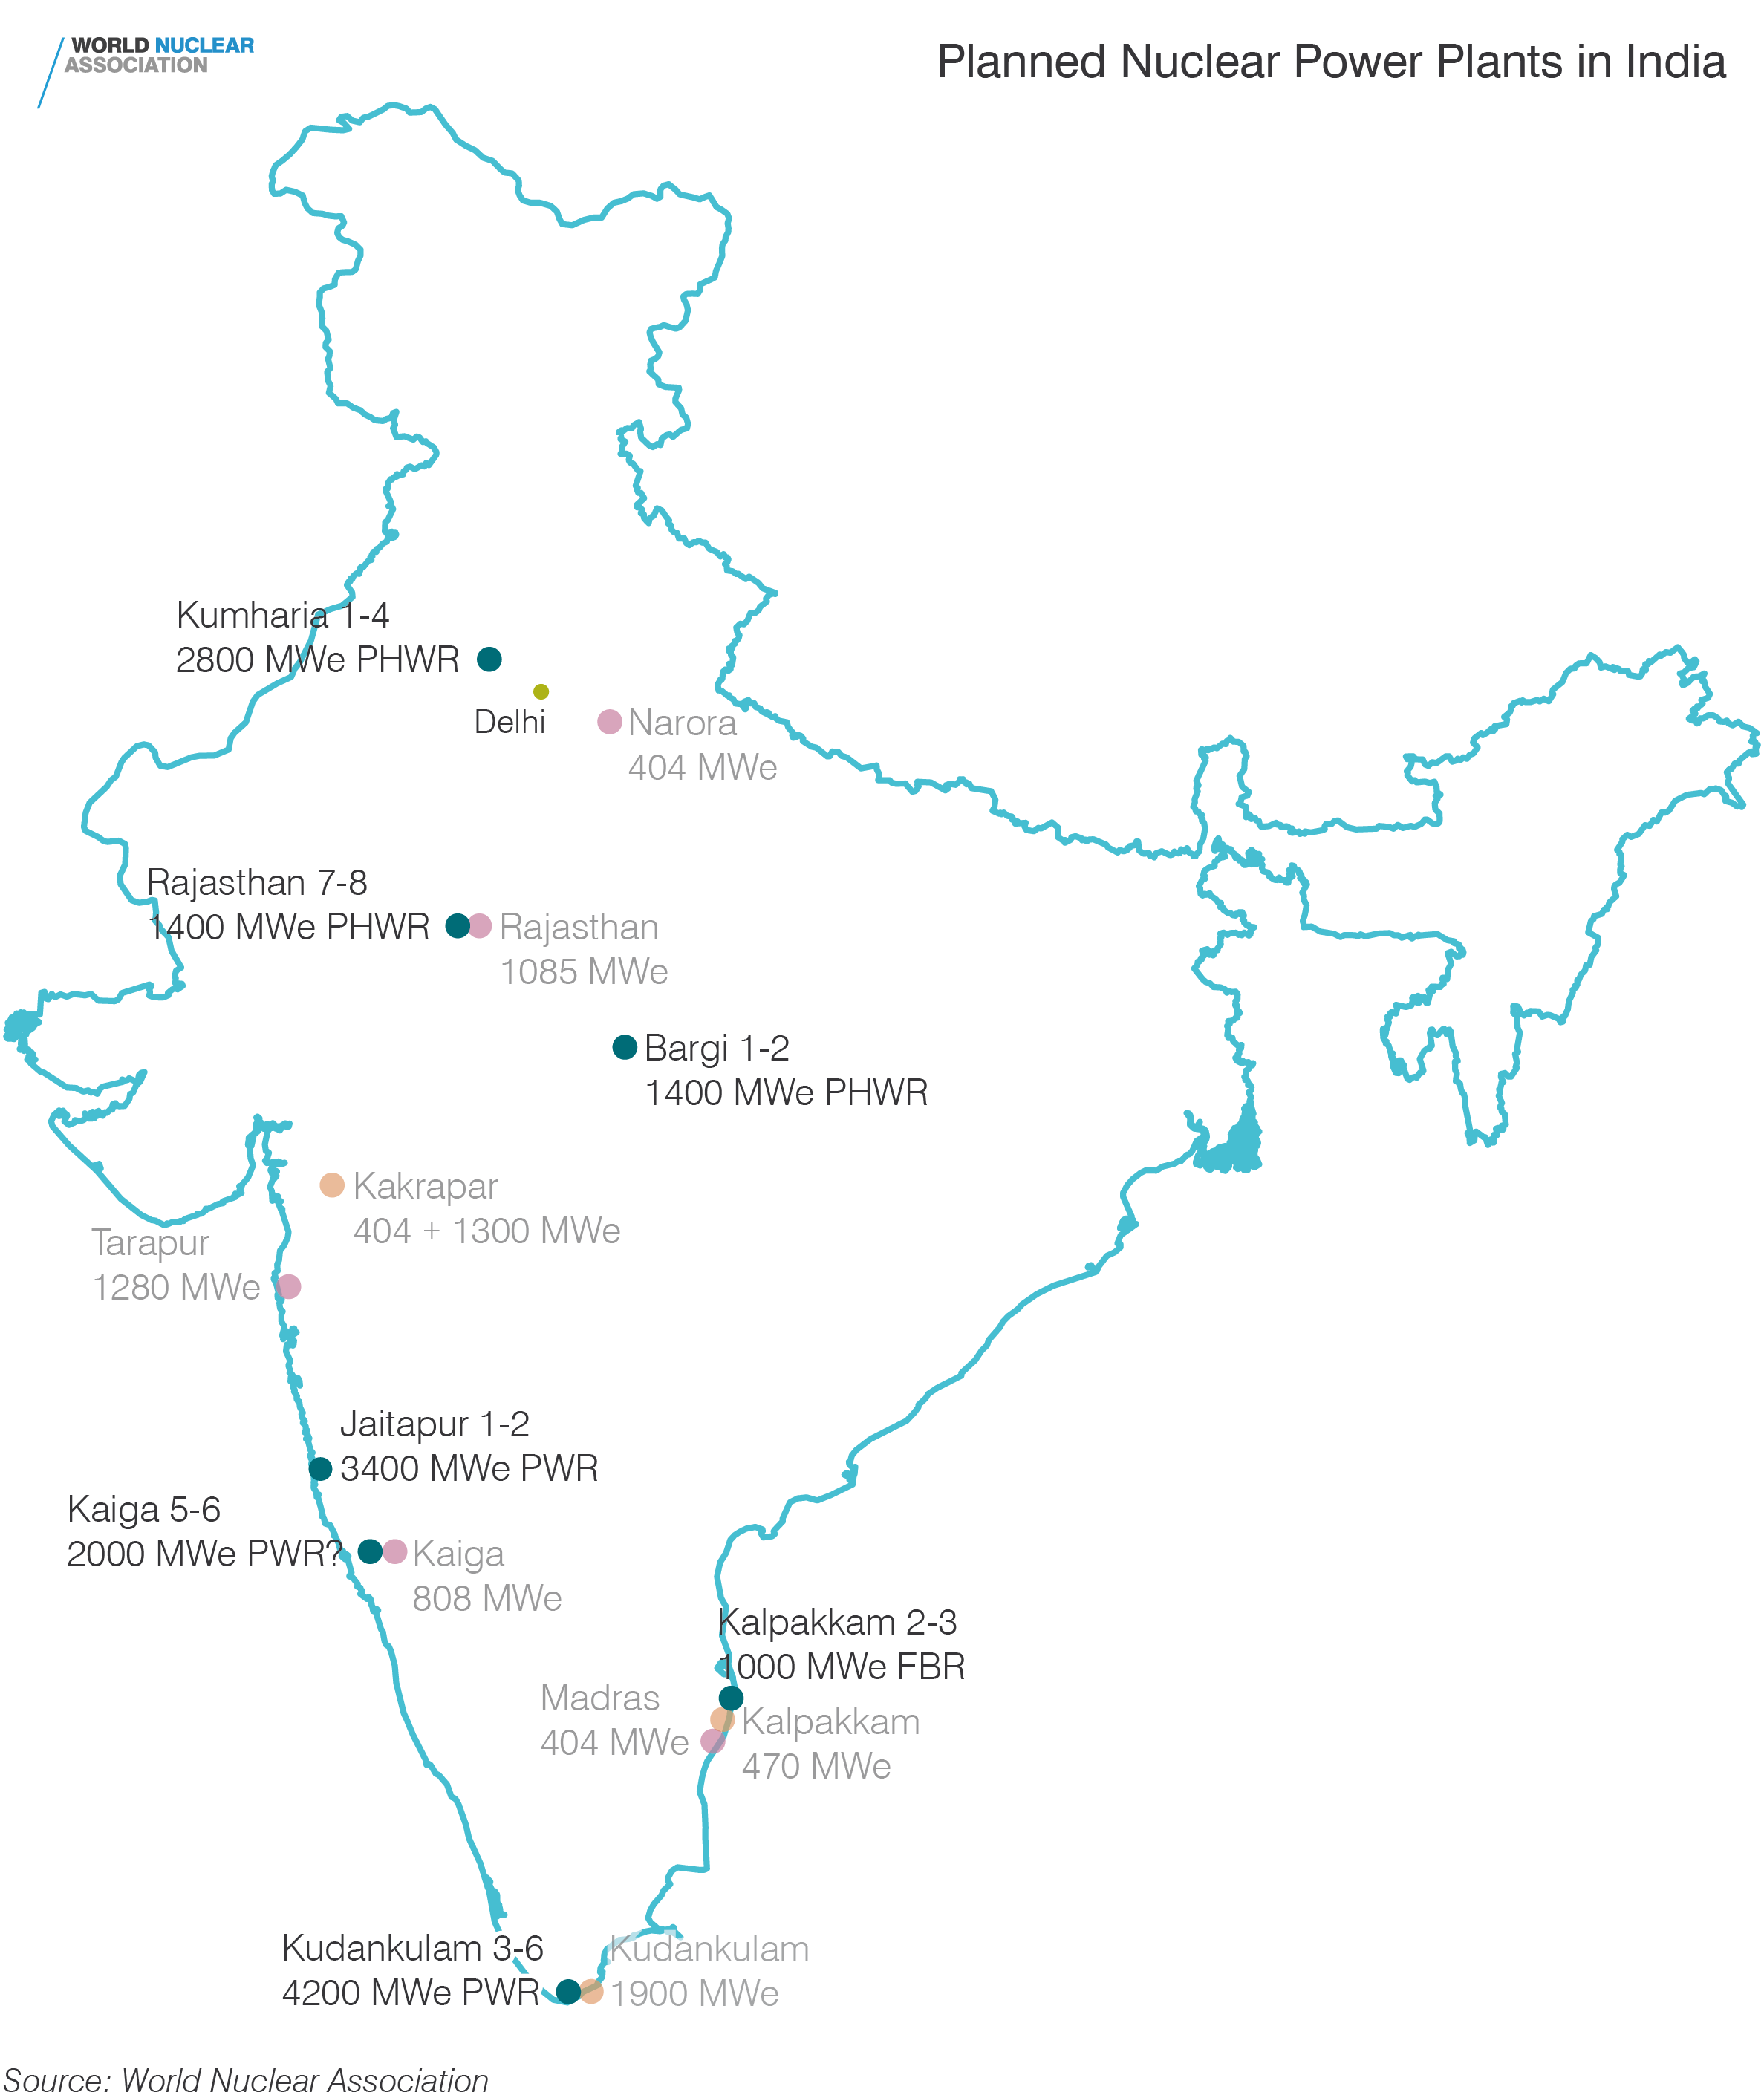 Planned reactors in India